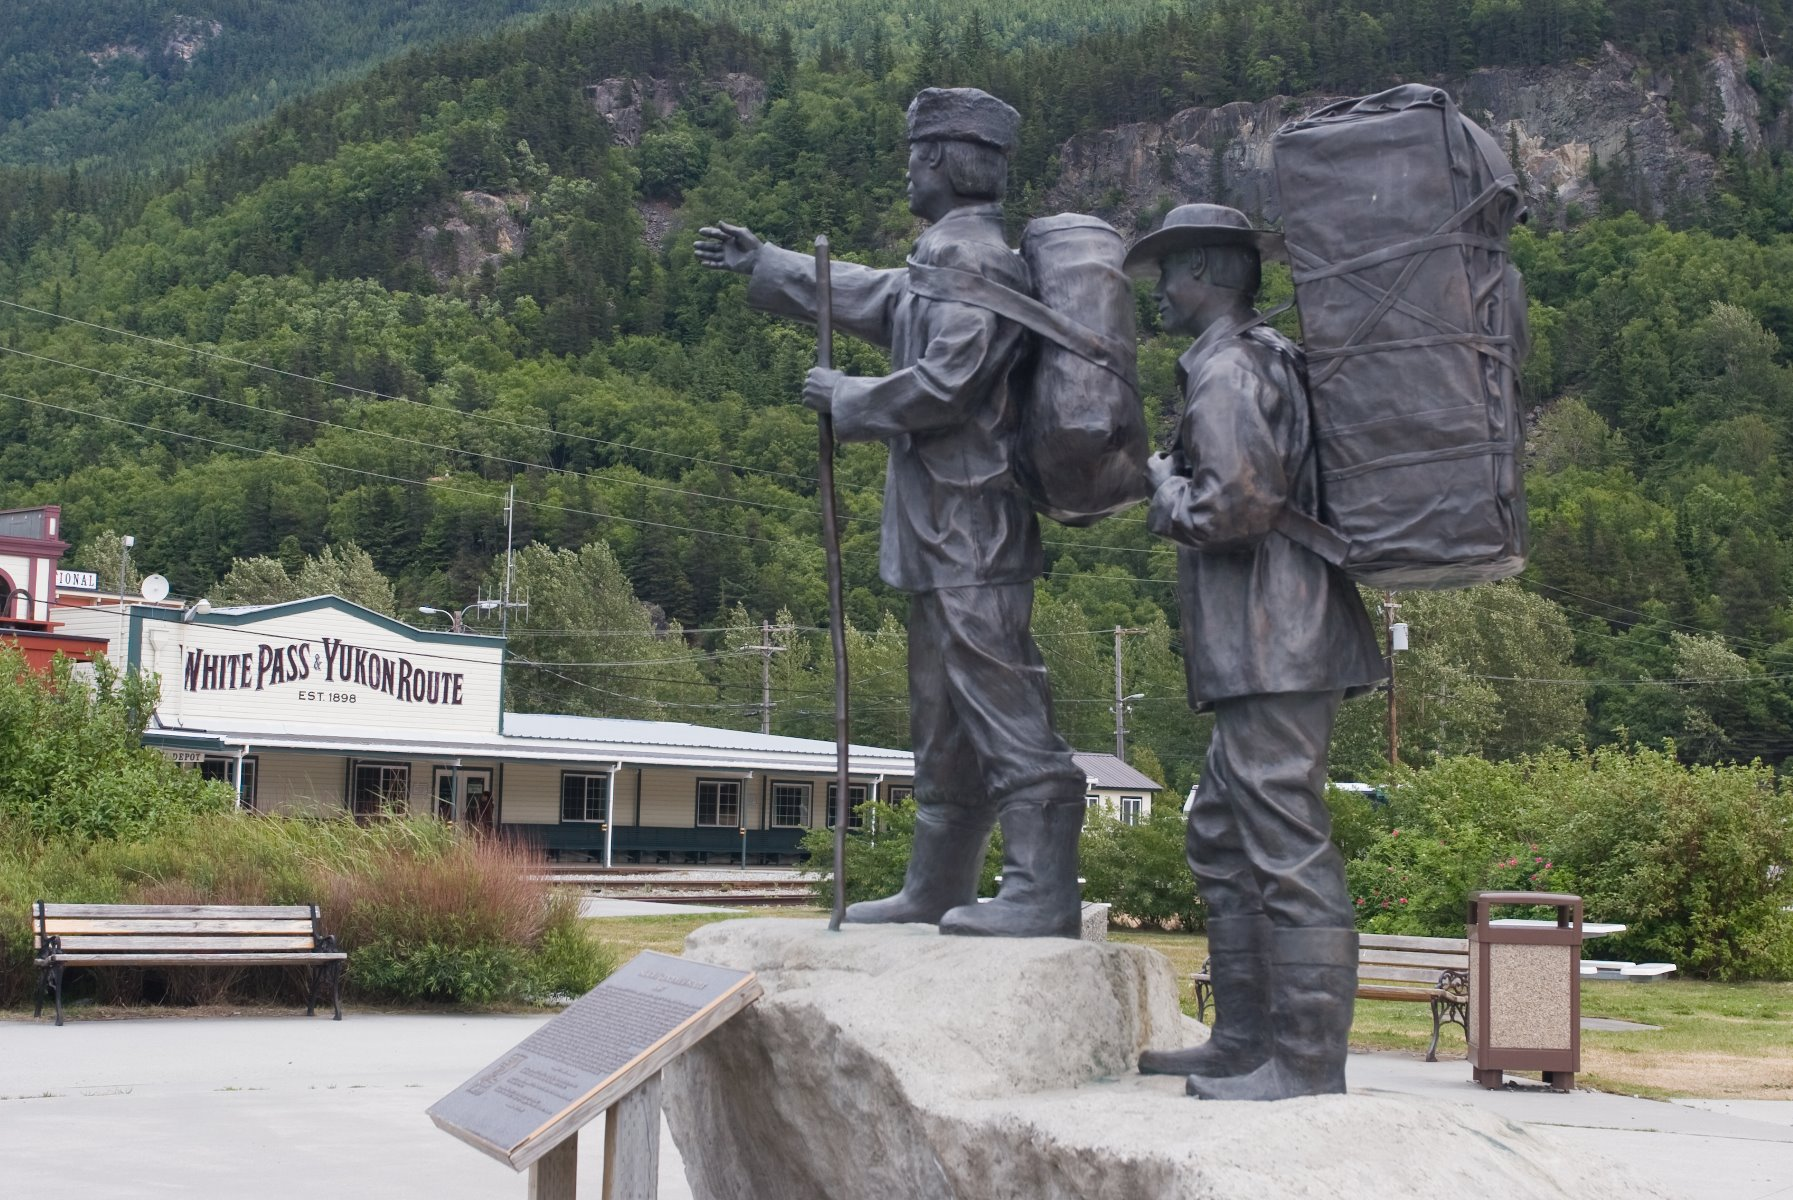 Monument erected for Skagway's Centennial in 1897.